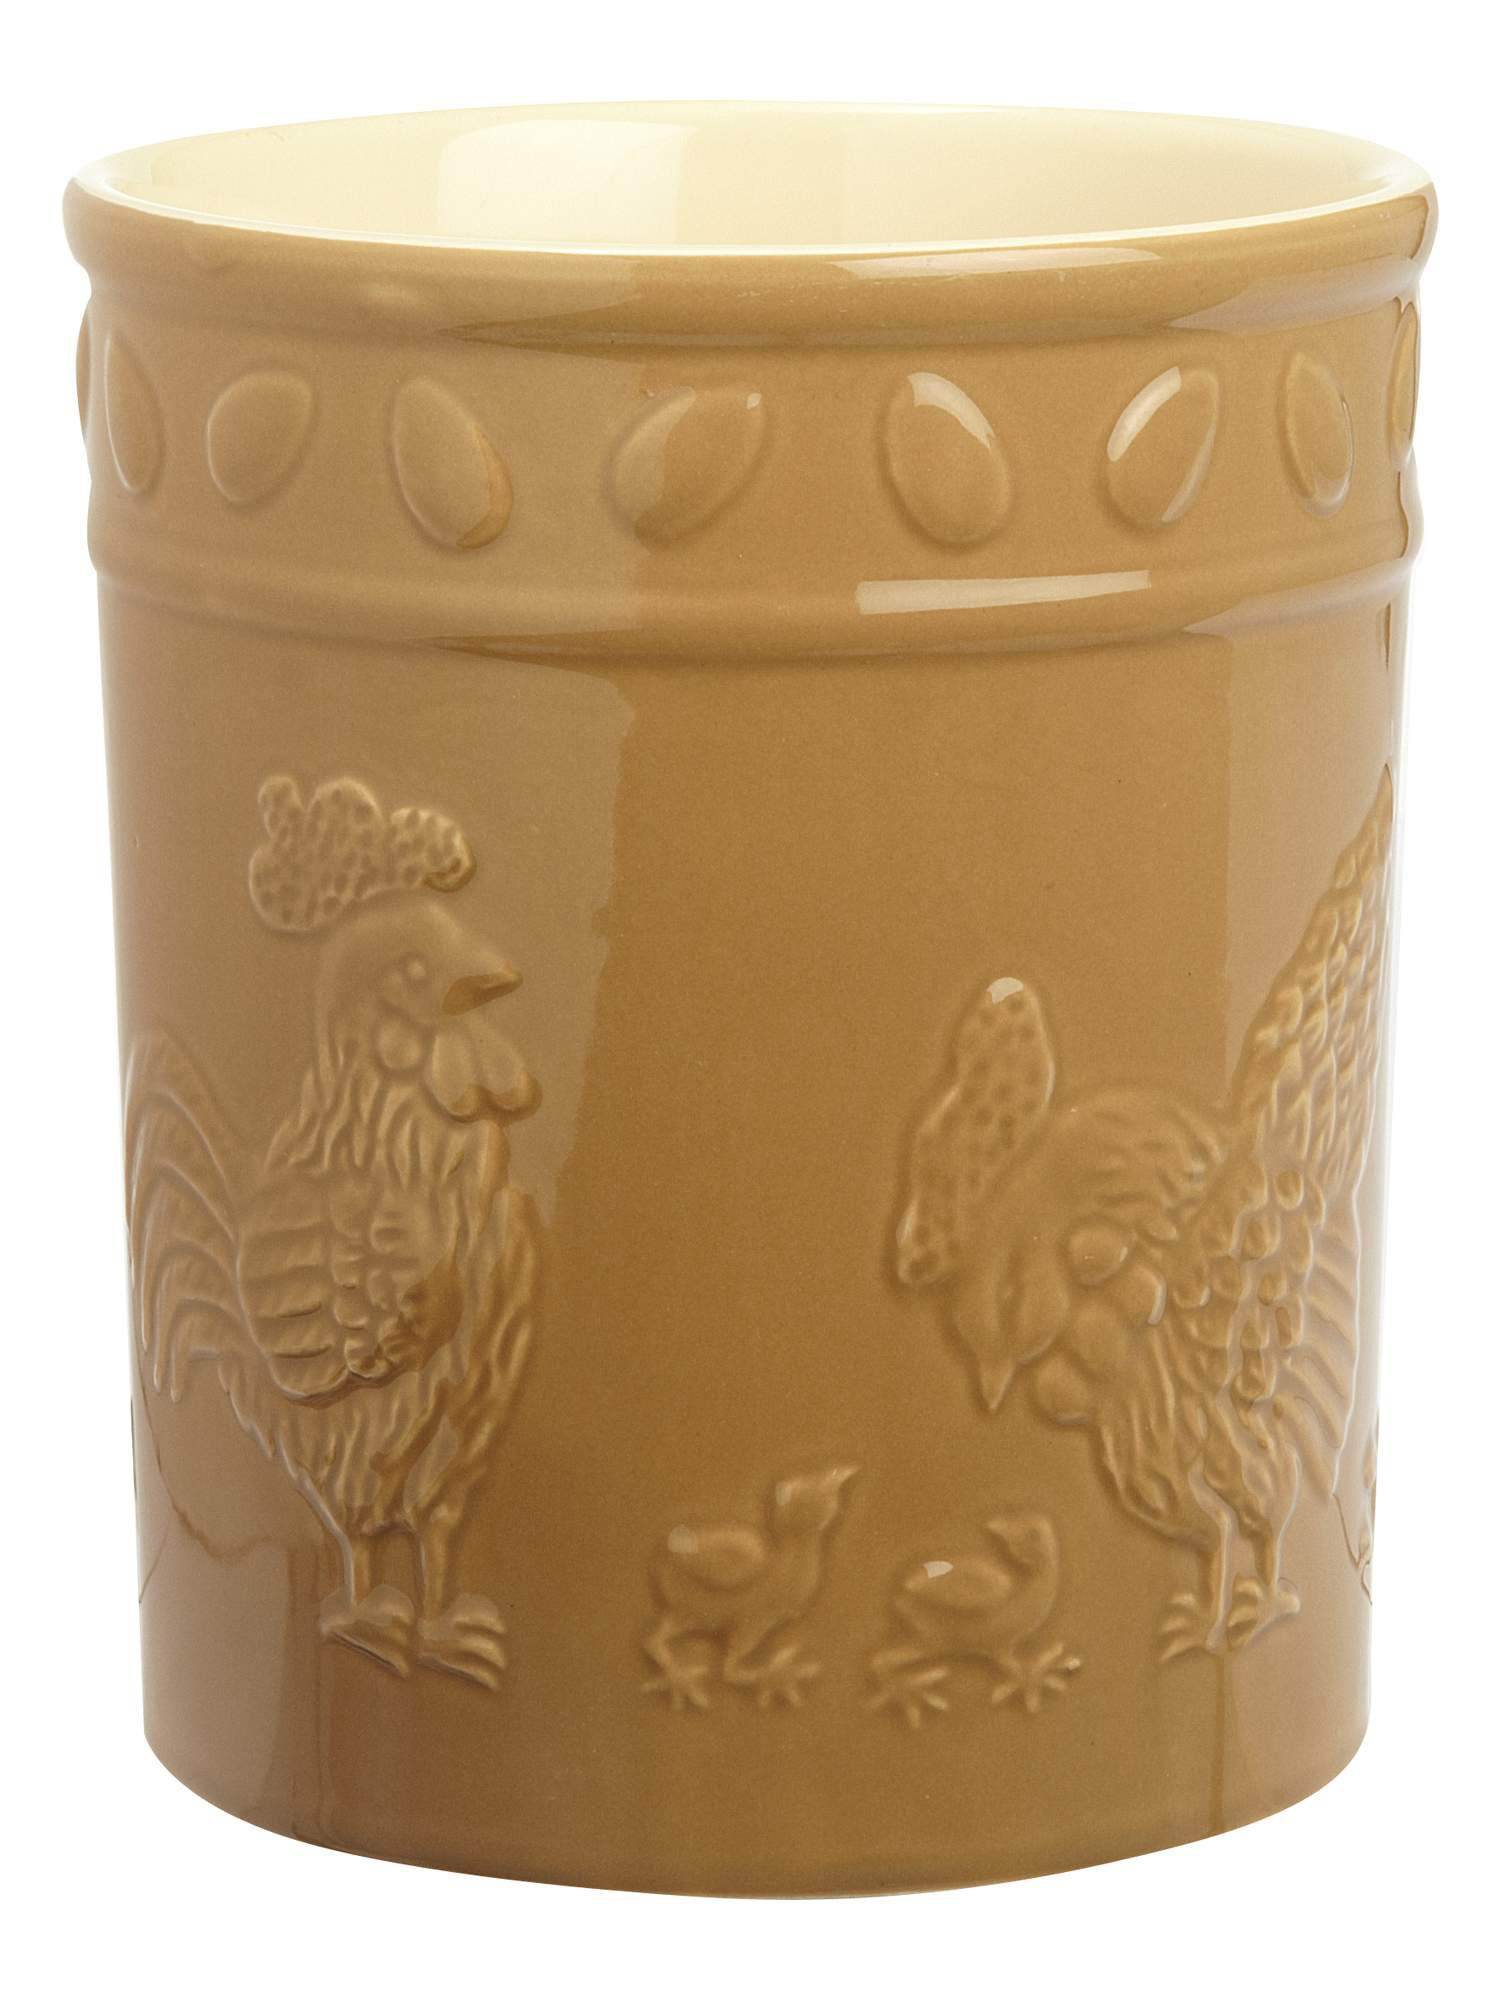 Linea Chicken utensil holder - Kitchen Accessories - House of Fraser